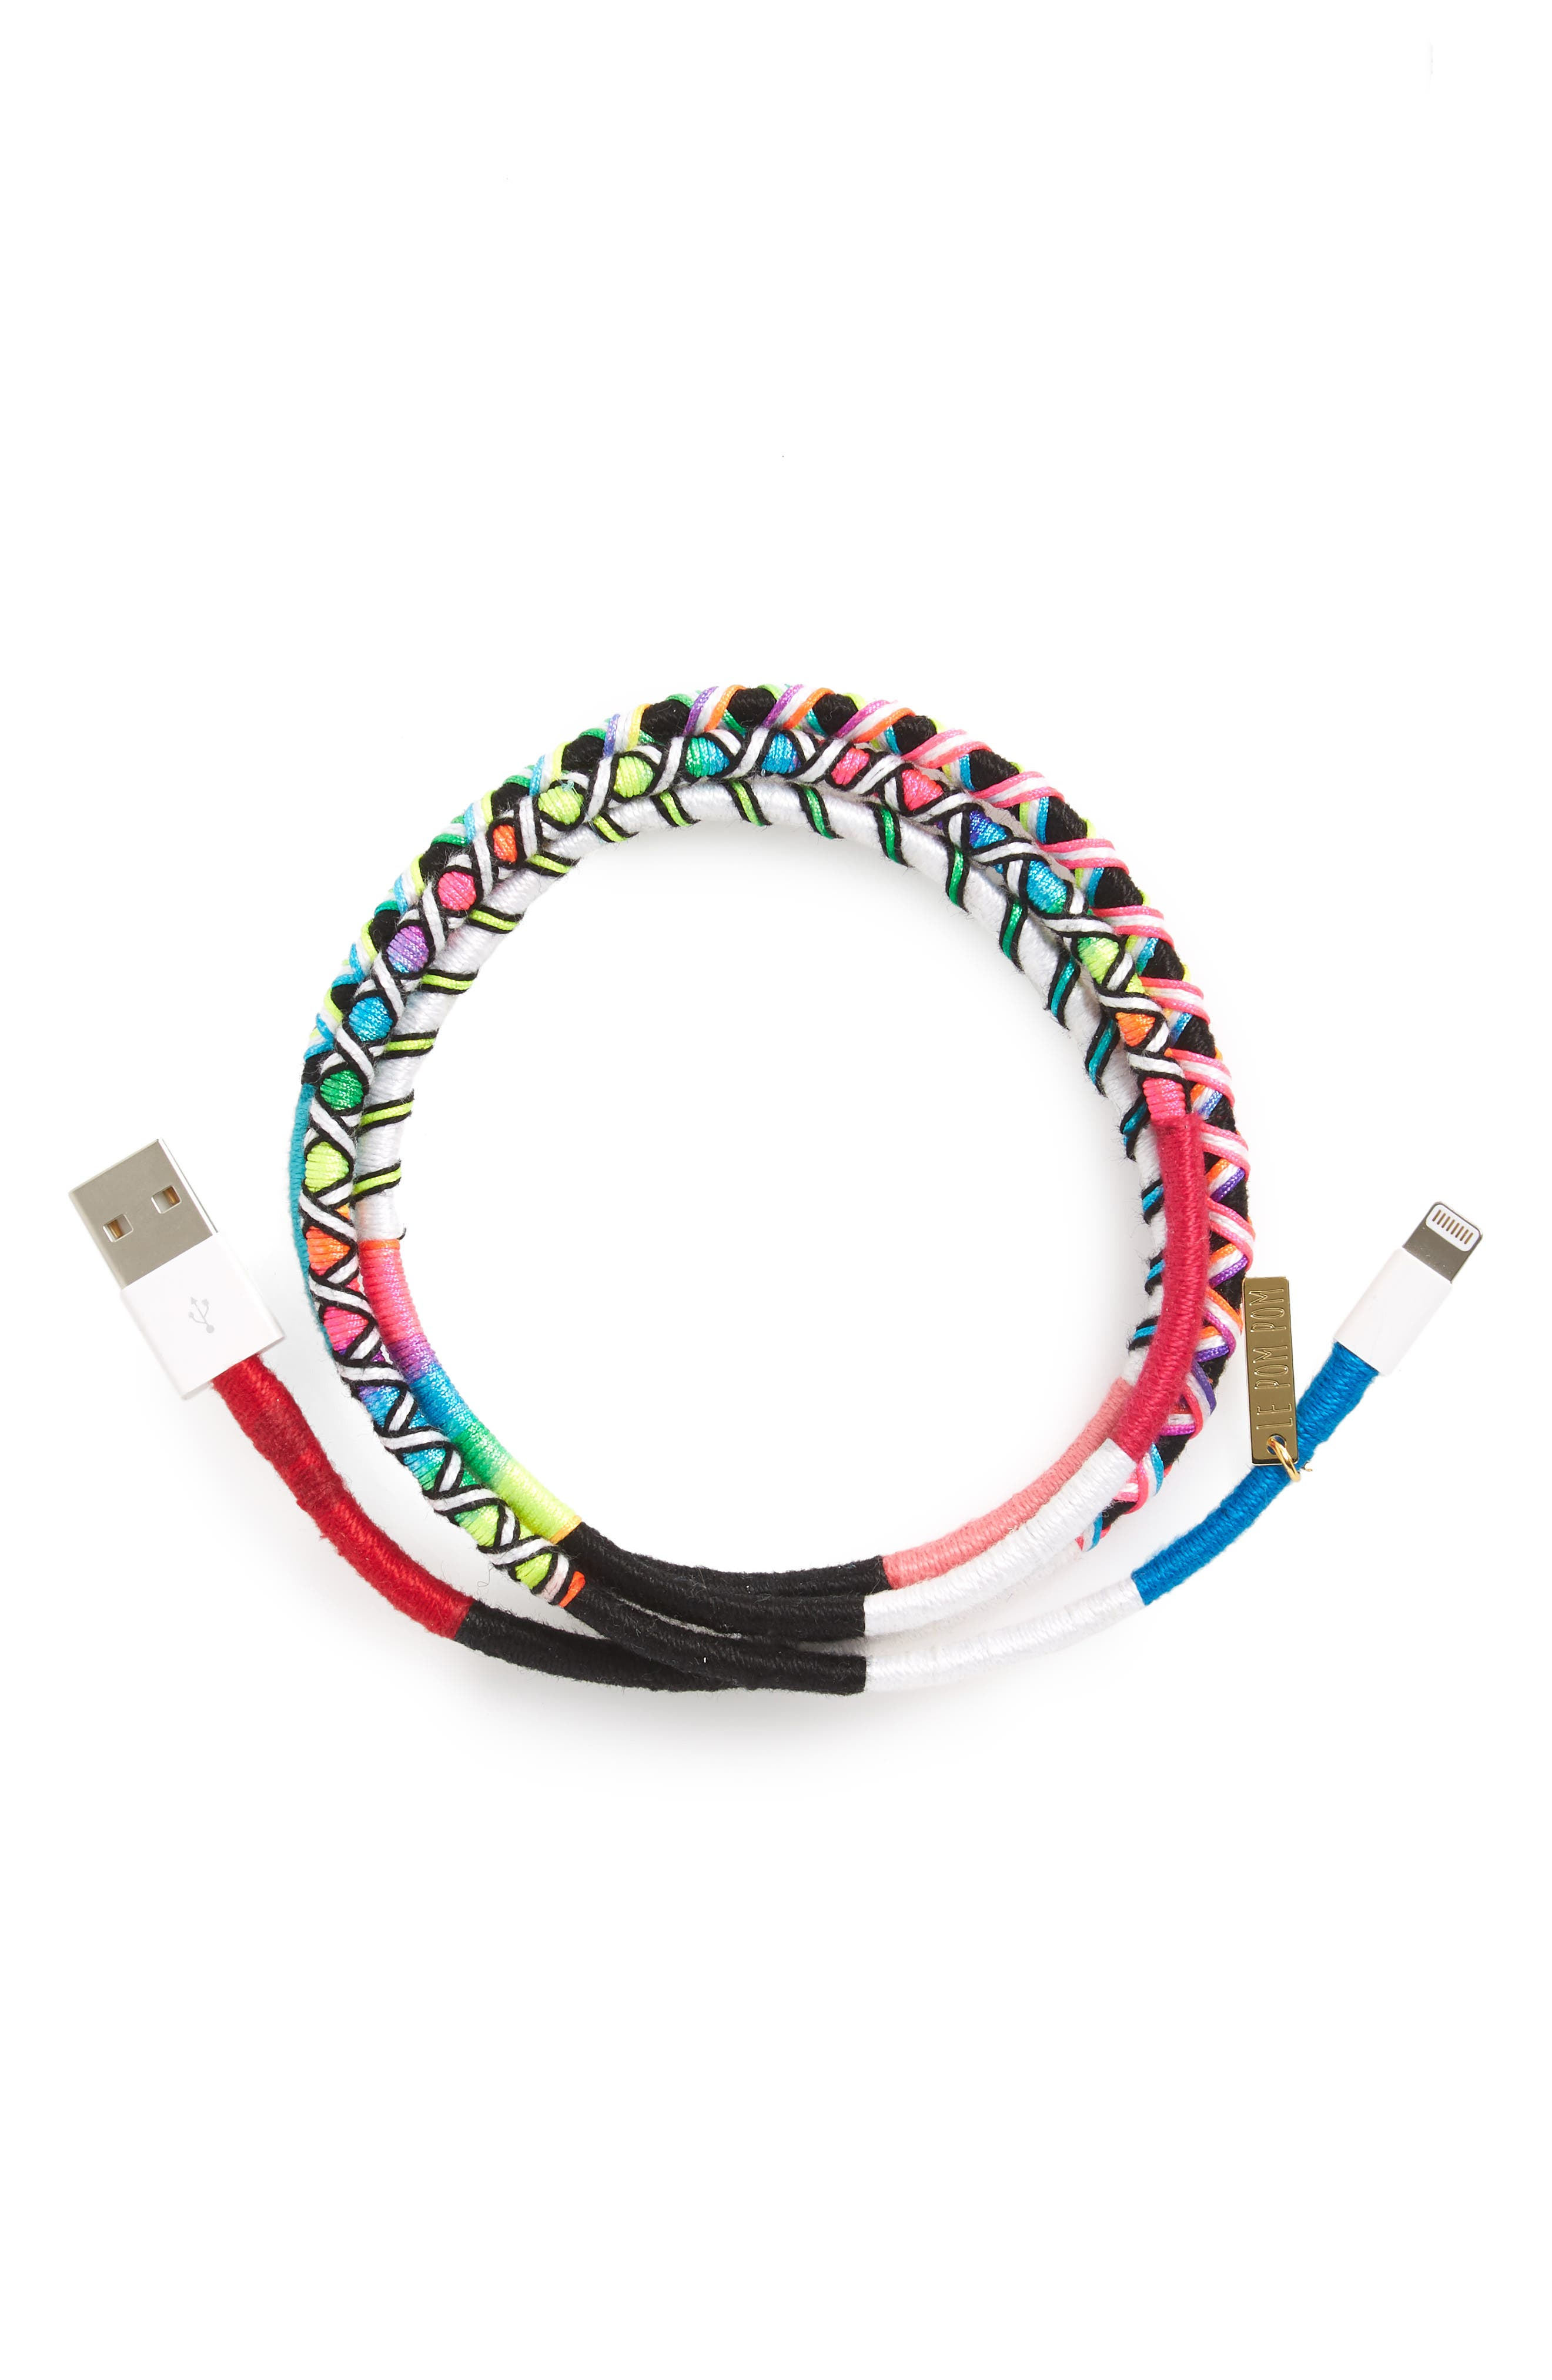 Polly Hand-Wrapped iPhone Charging Cord,                             Main thumbnail 1, color,                             Rainbow